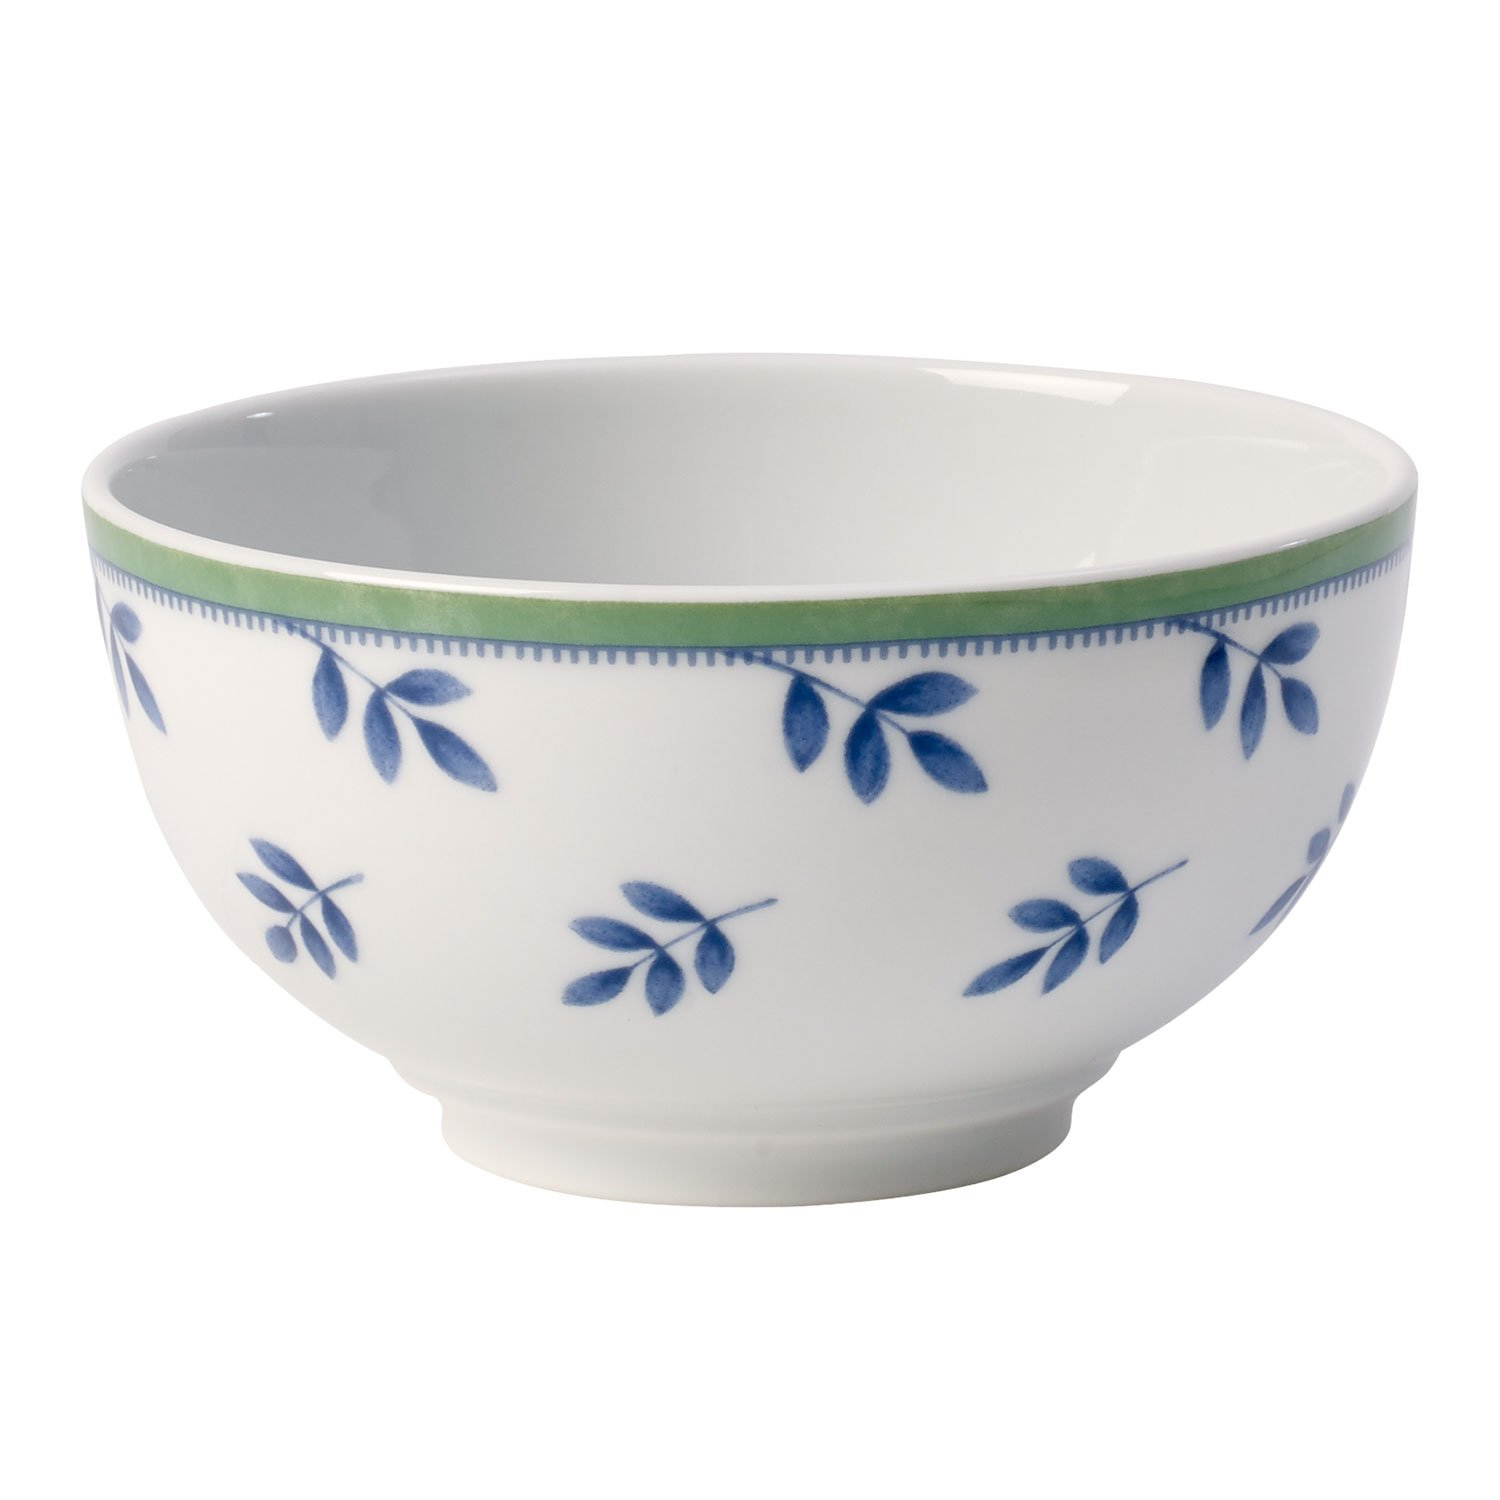 Villeroy & Boch Switch-3 Decorated Rice Bowl